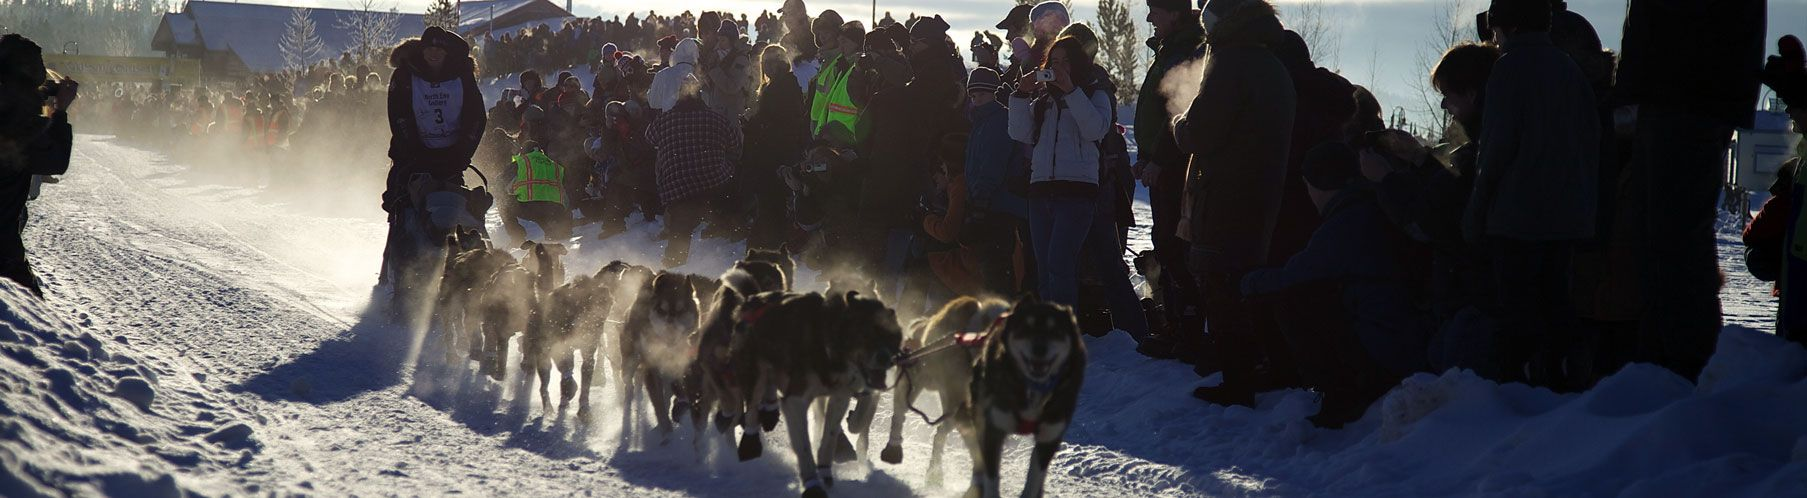 Dog Sled Race Image